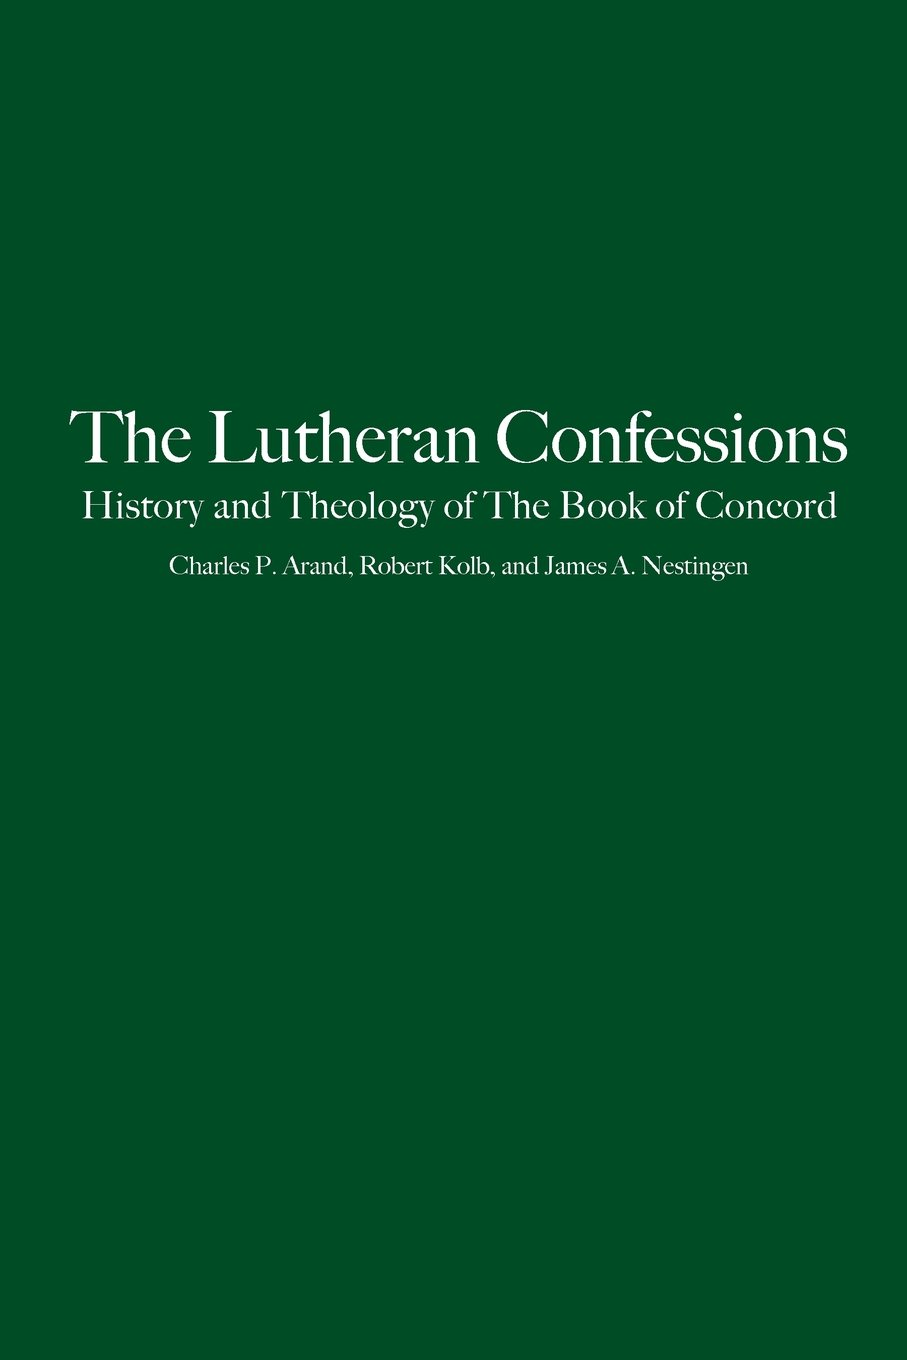 The lutheran confessions history and theology of the book of the lutheran confessions history and theology of the book of concord charles p arand robert kolb james a nestingen 9780800627416 amazon books fandeluxe Image collections